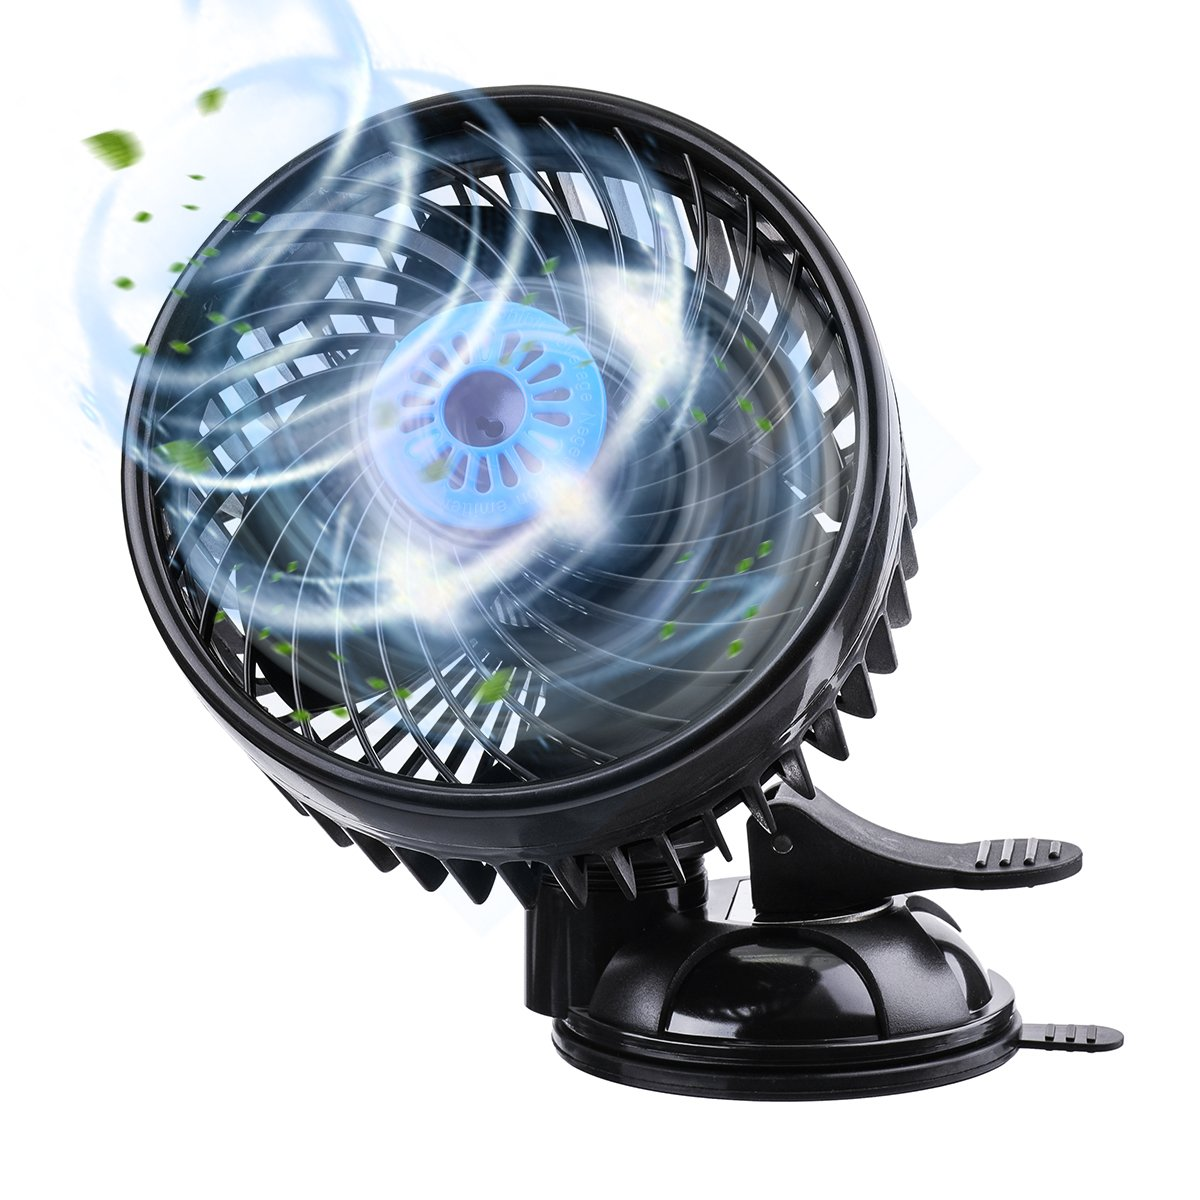 """car air fan cooling air fan 12 volt fan Powerful Adjustable Speed Car Fans Electric Rotatable Windshield Cooling Fans with Suction Cup Summer wind Fan Air Circulator for Van SUV RV Boat Auto 6.5"""""""